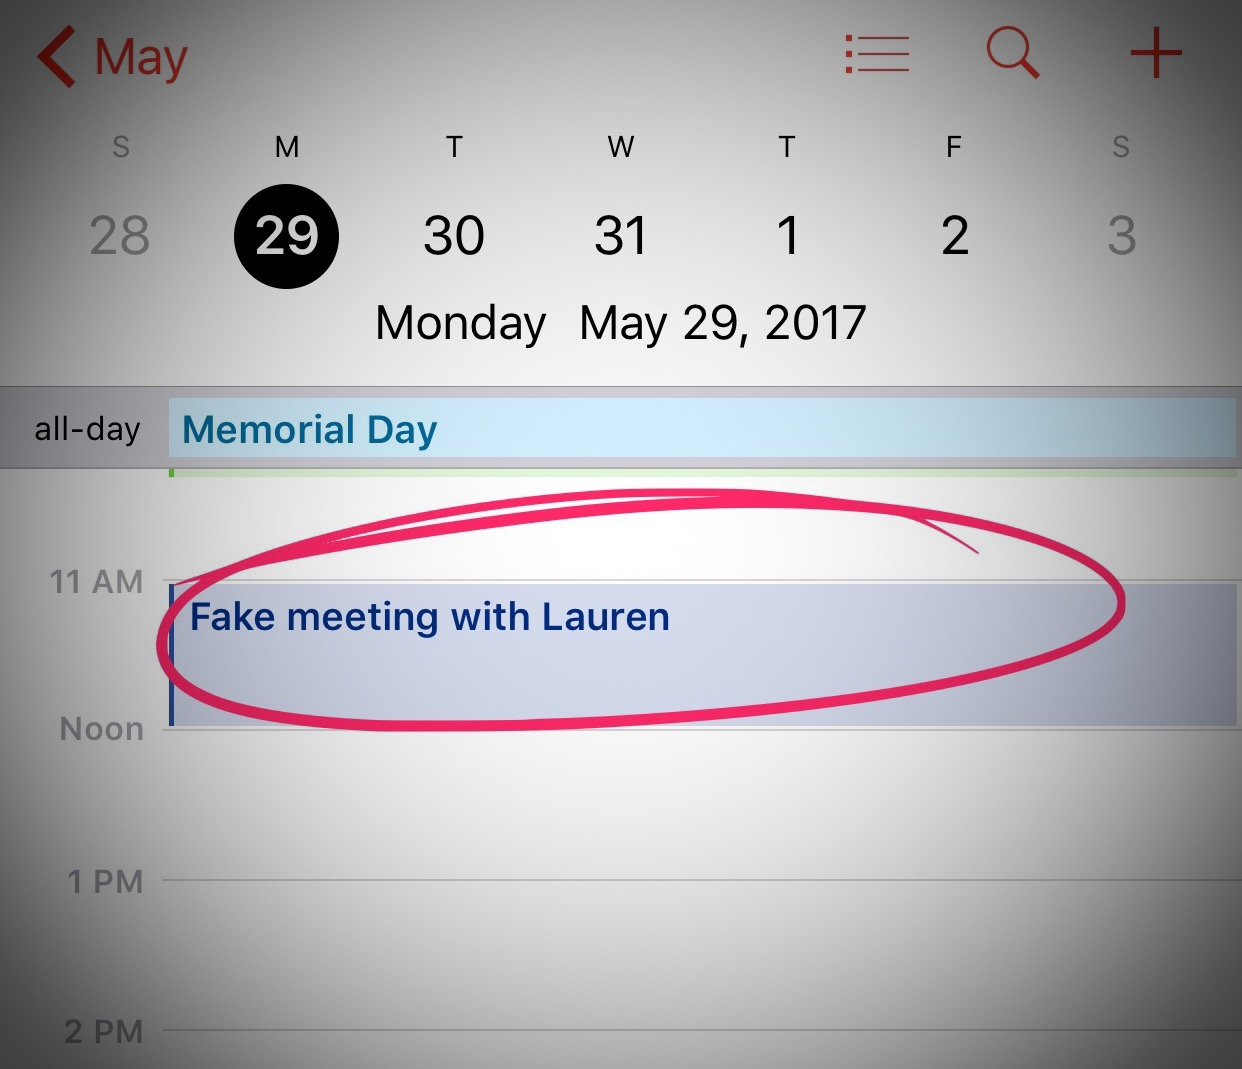 This meeting is totally fake, right?